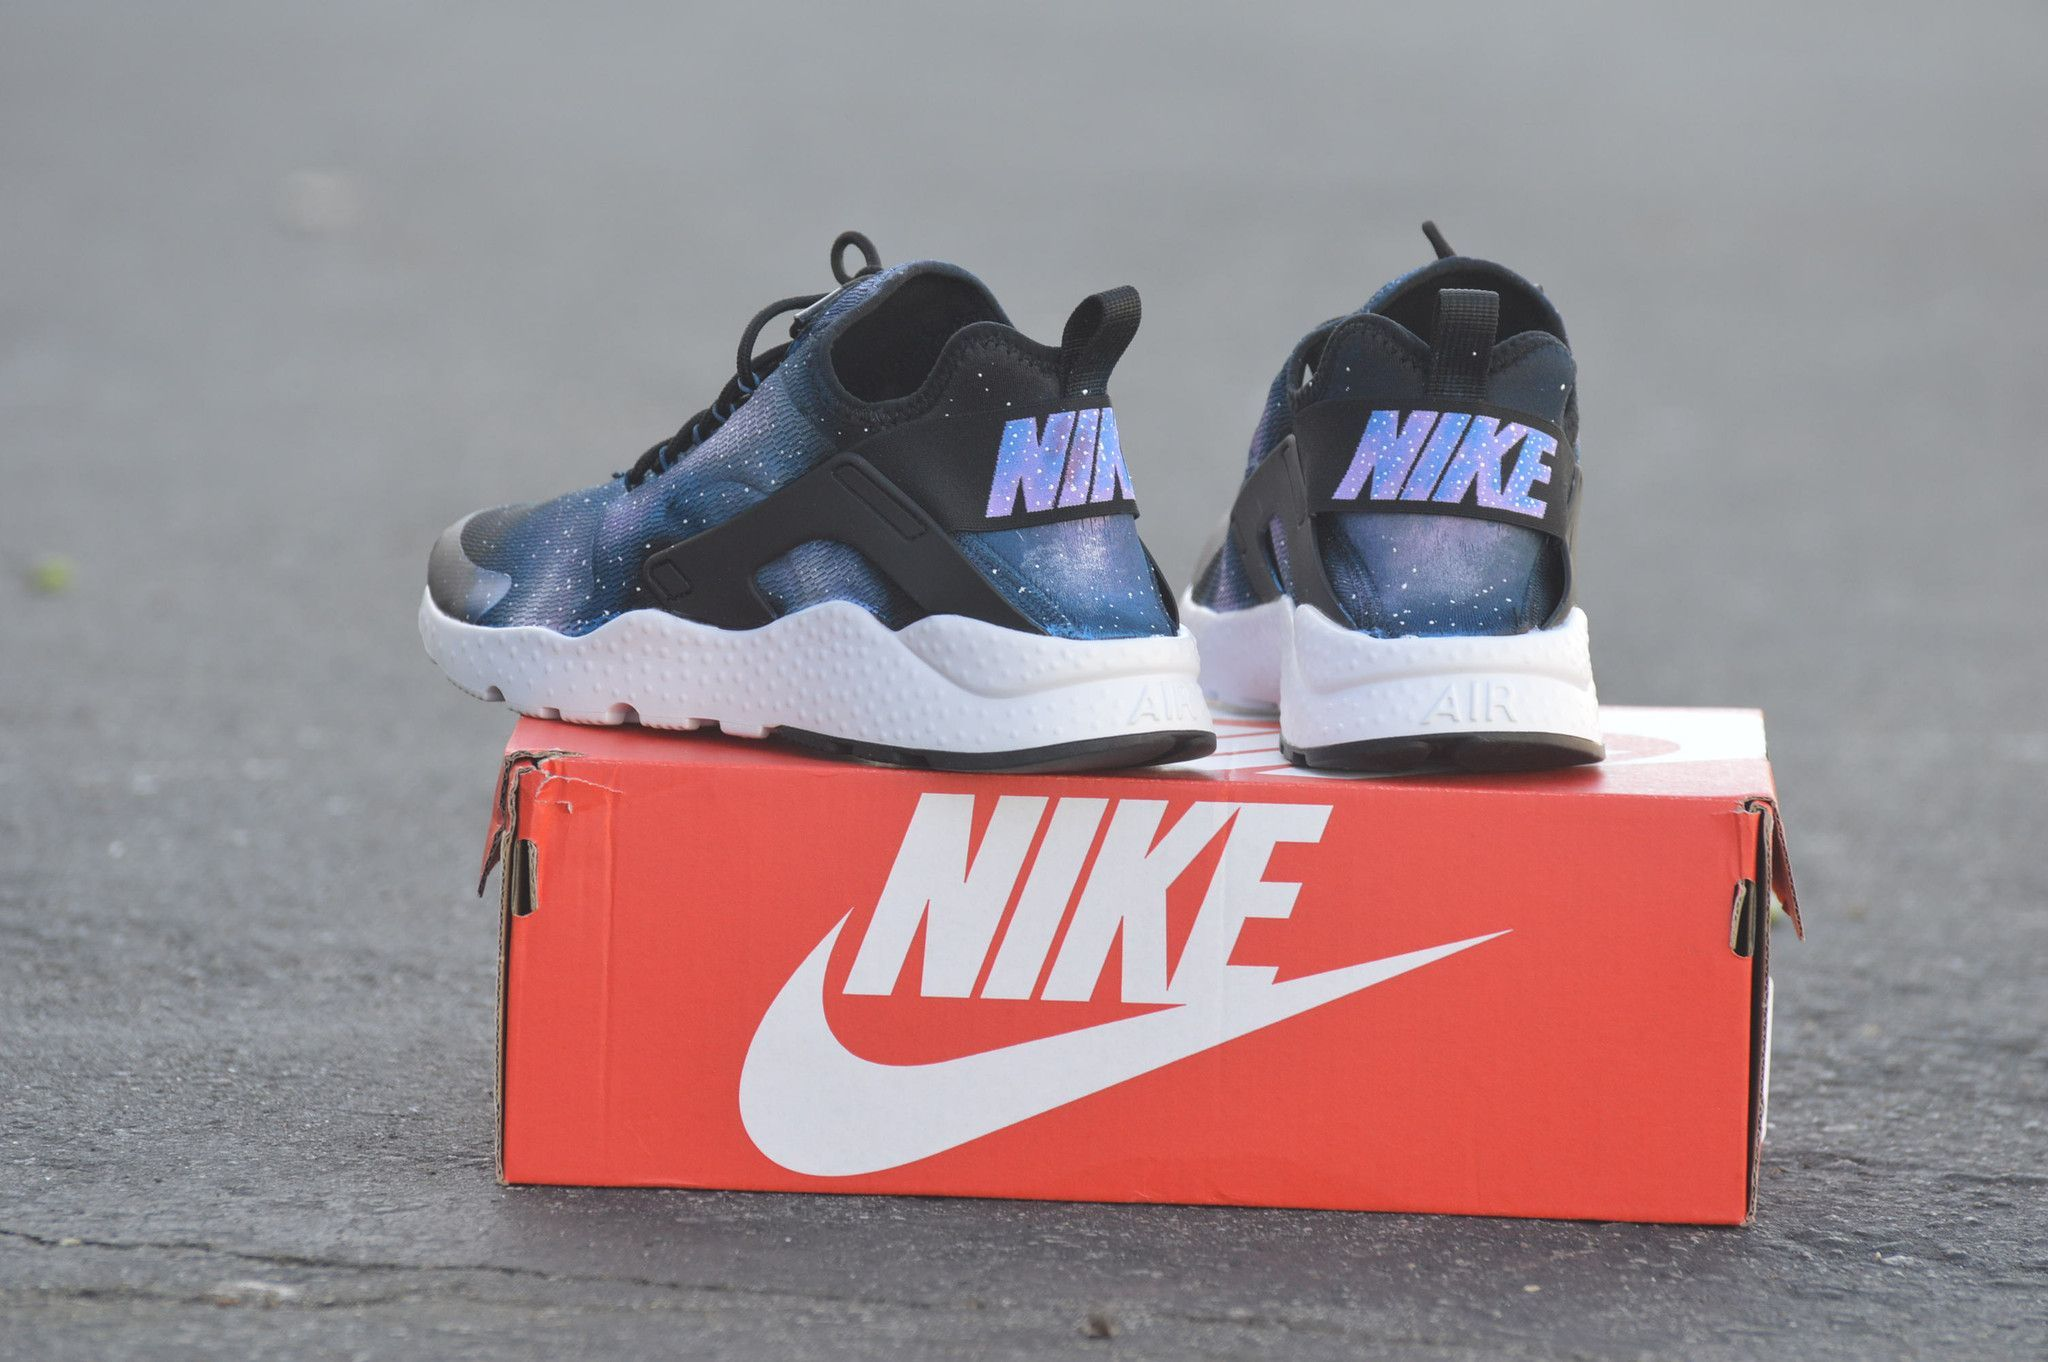 uk availability 164a3 a052d These Nike Huarache Ultras have been painted with a Galaxy Theme The Nike  Air Huarache Ultra Womens Shoe is crafted with a stretchy one-piece upper,  ...